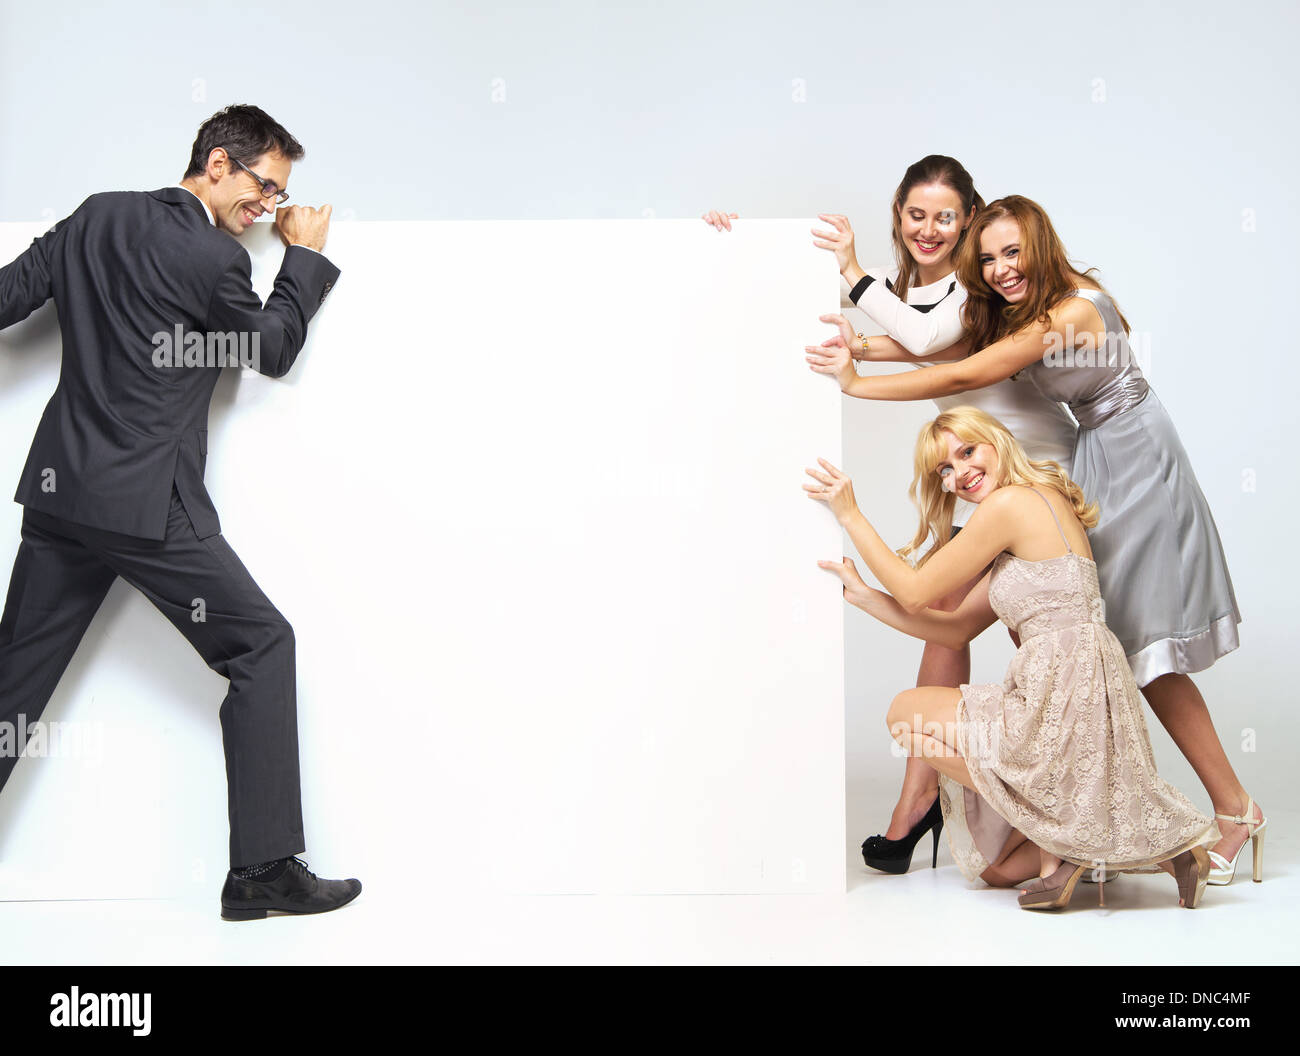 Man pushing through a board against young women Stock Photo